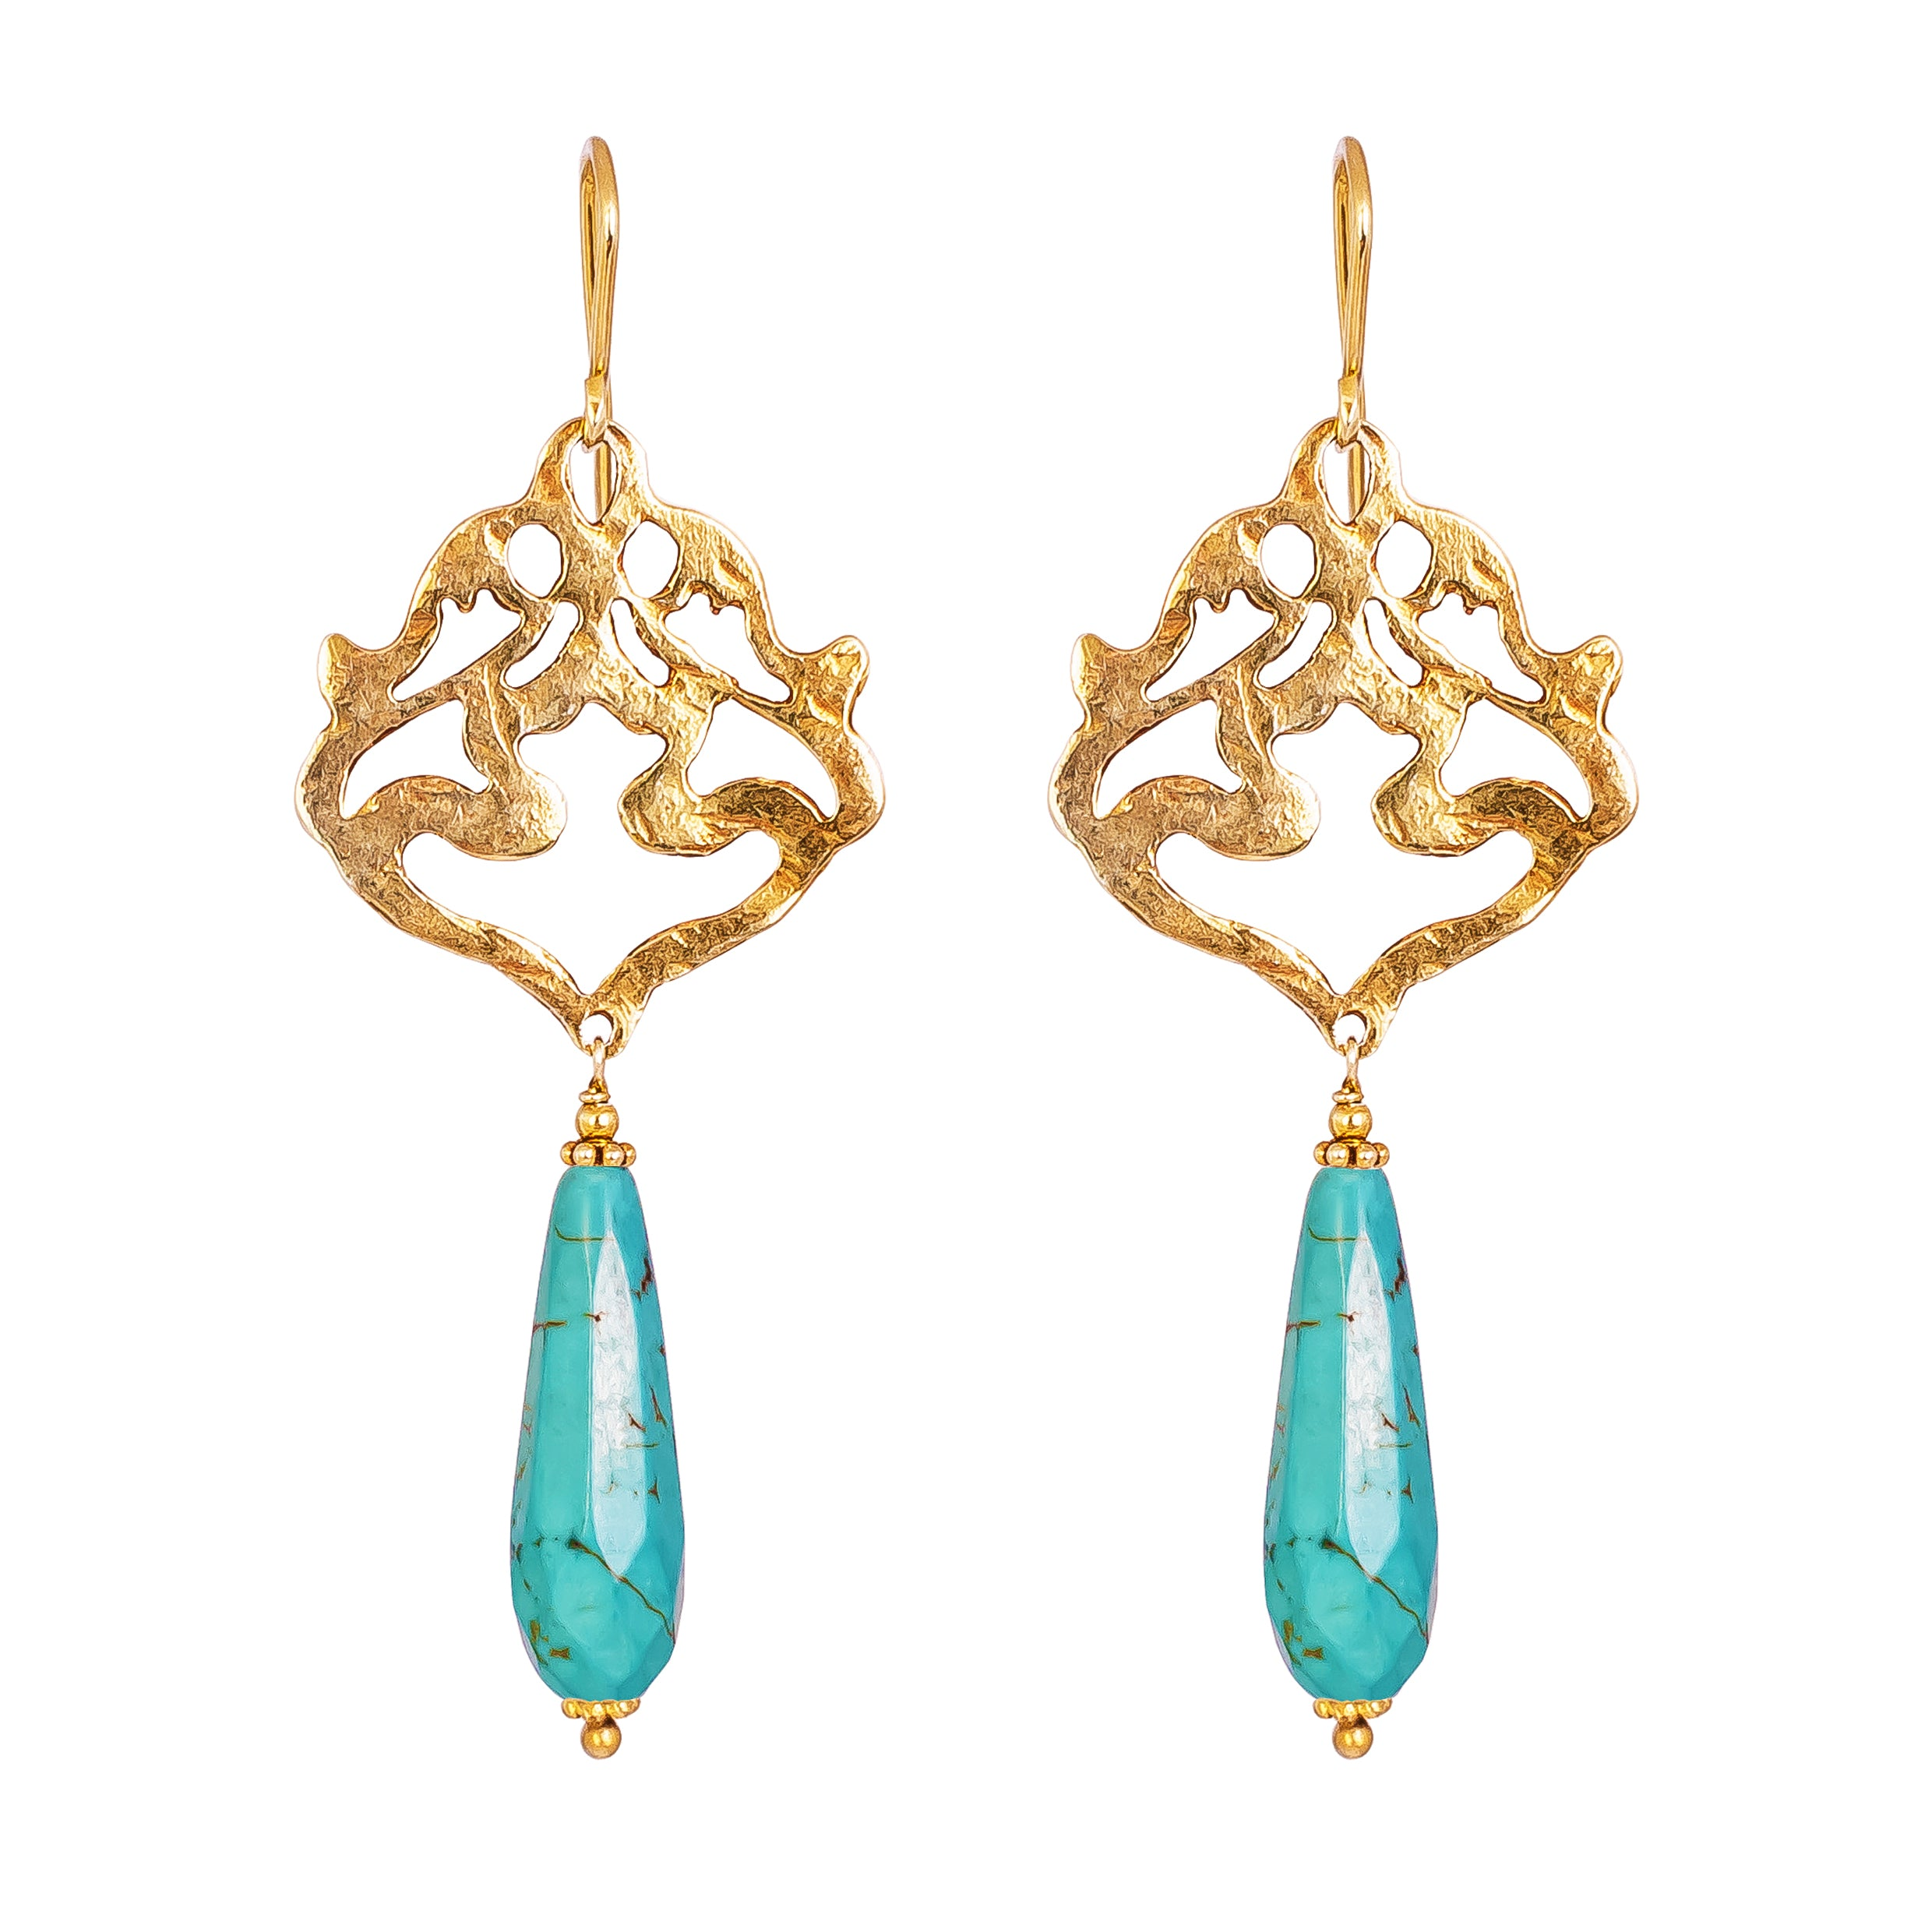 Flamingo Earrings | Hammered Gold With Faceted Turquoise Detail